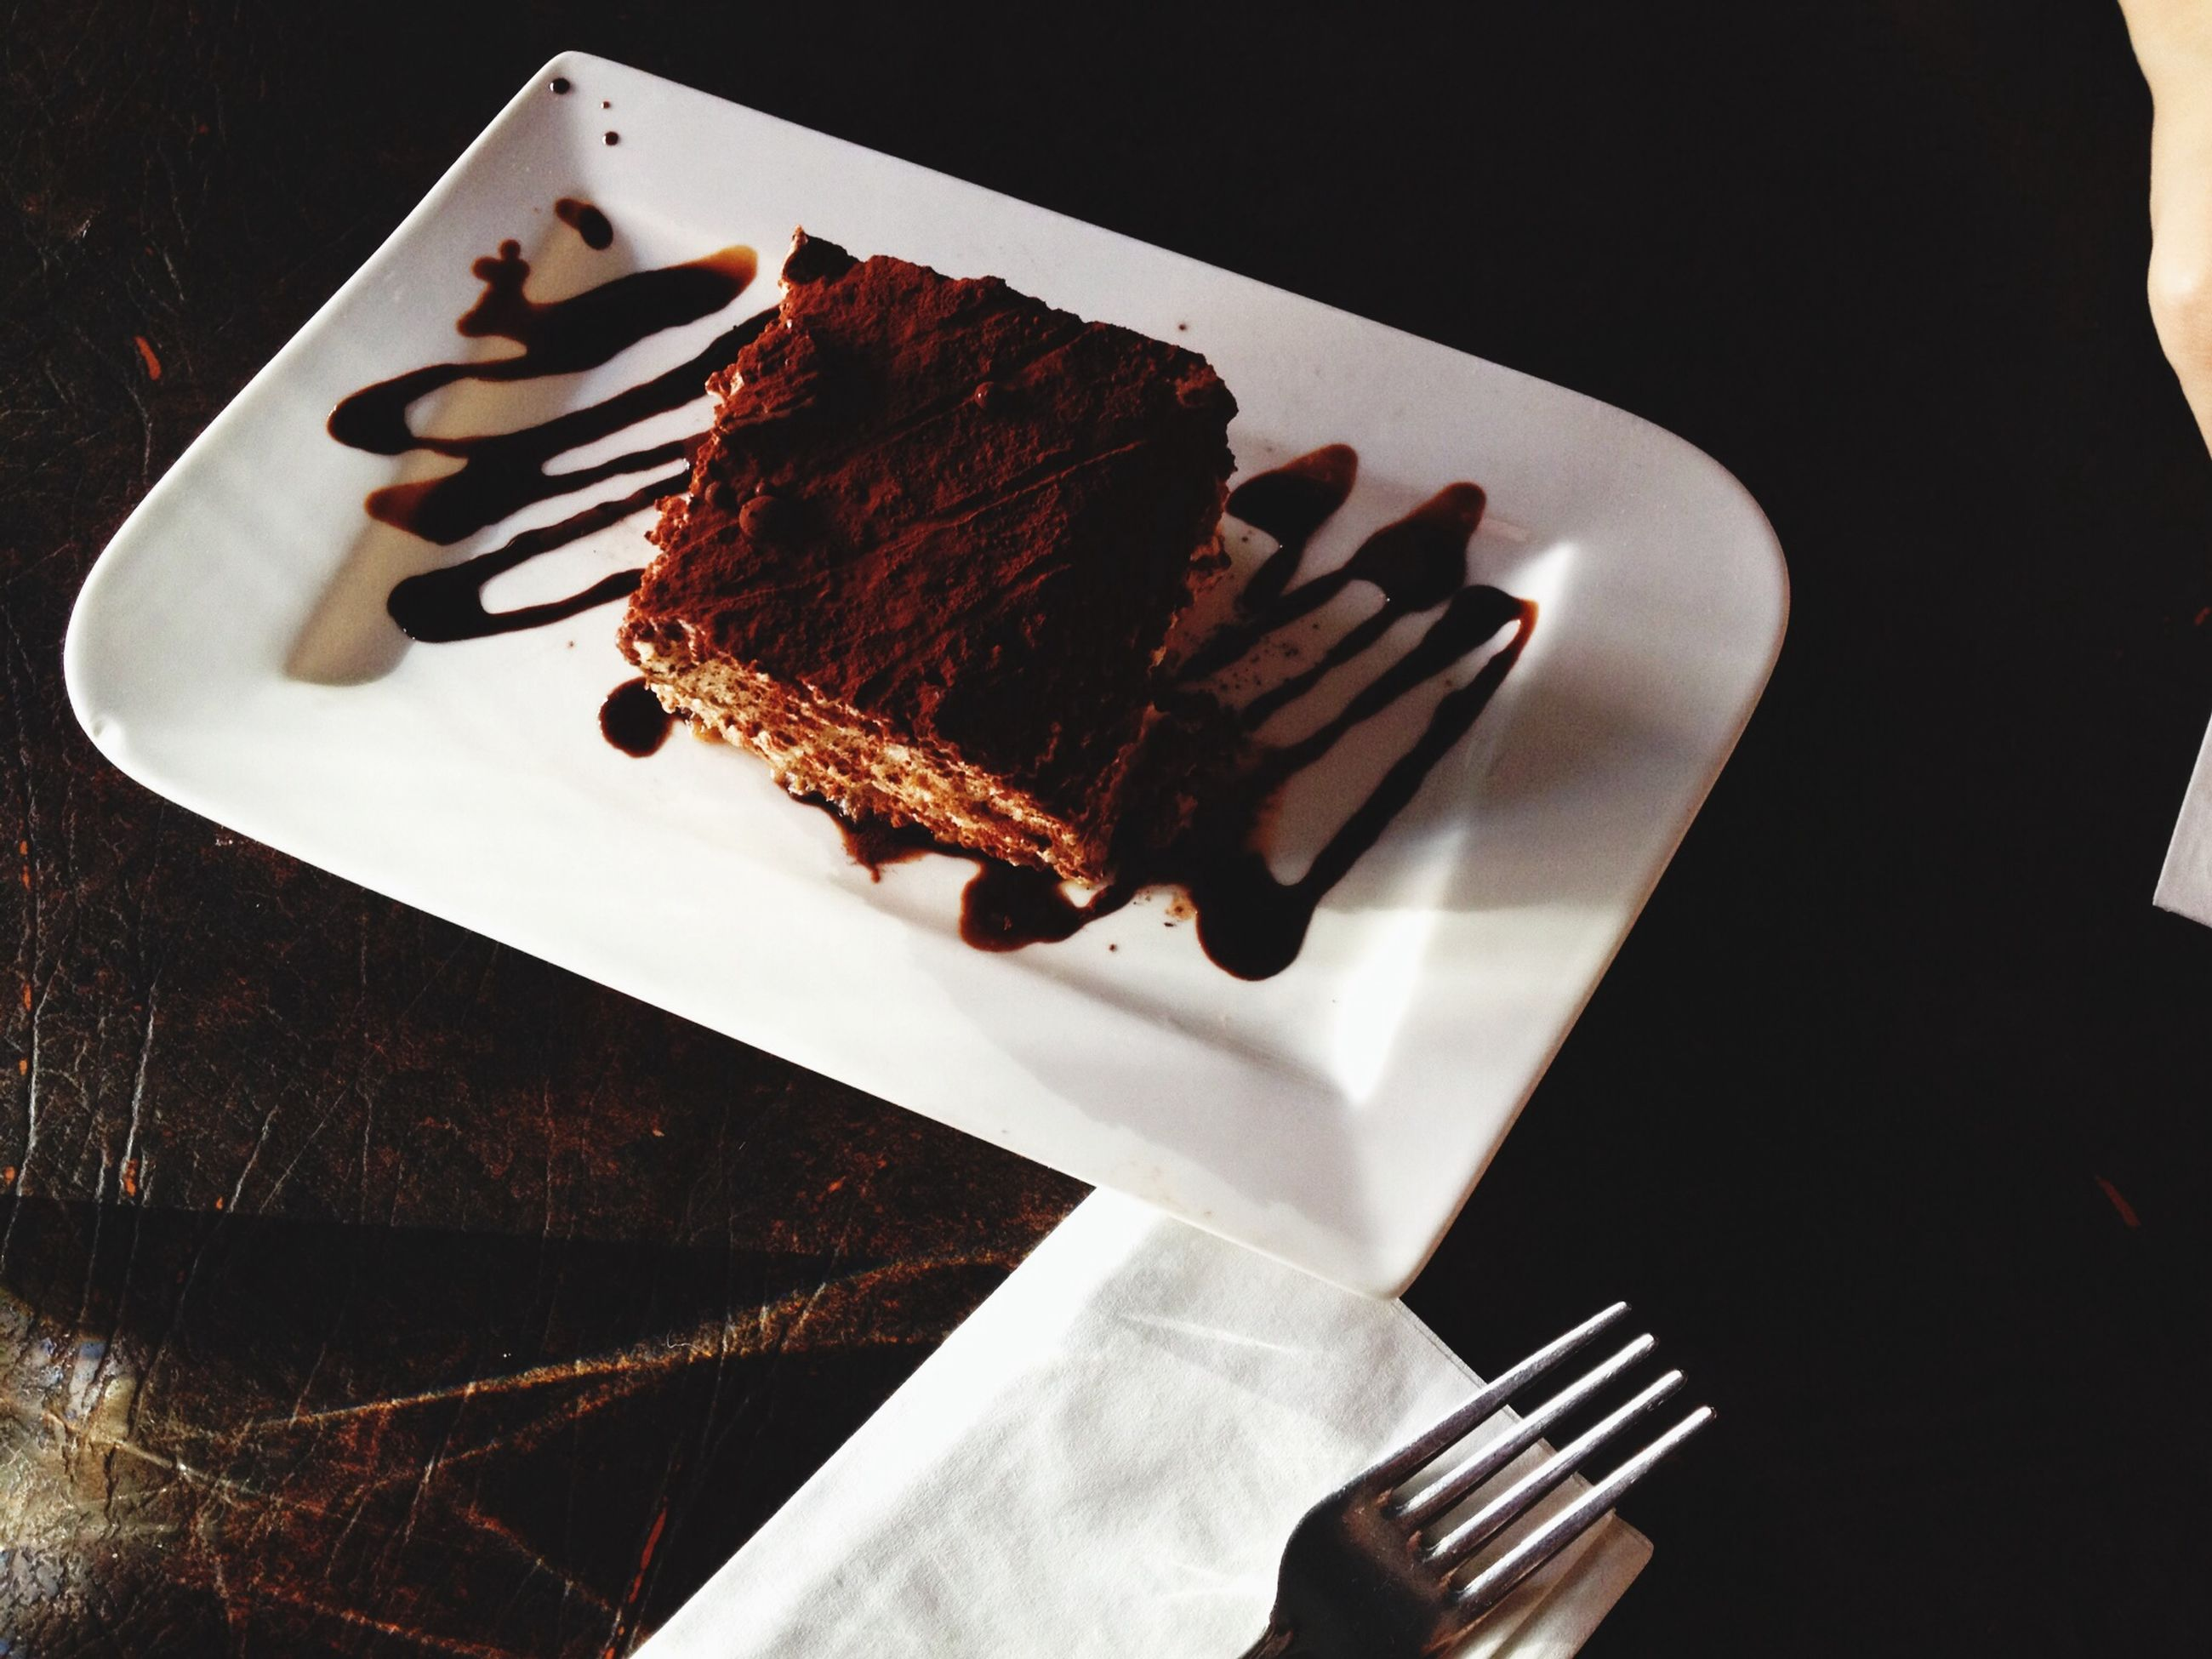 food, food and drink, indoors, still life, sweet food, ready-to-eat, indulgence, freshness, unhealthy eating, dessert, plate, table, close-up, fork, cake, chocolate, high angle view, temptation, slice, serving size